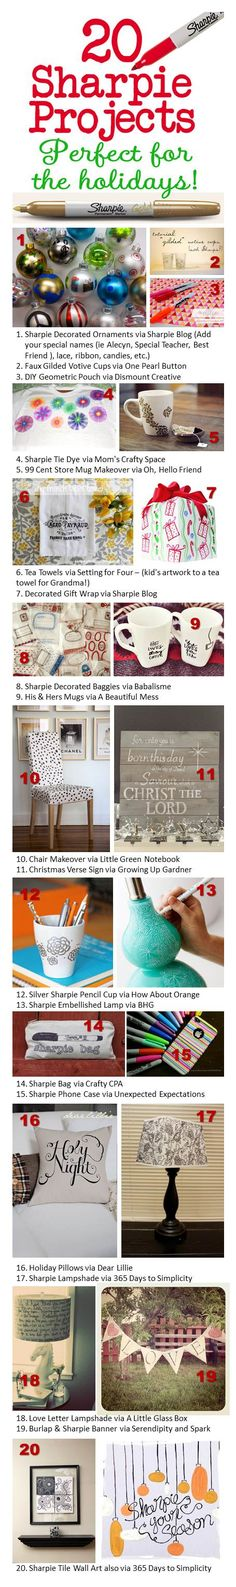 20 Sharpie Projects - Has links to the individual projects. Love Sharpies.